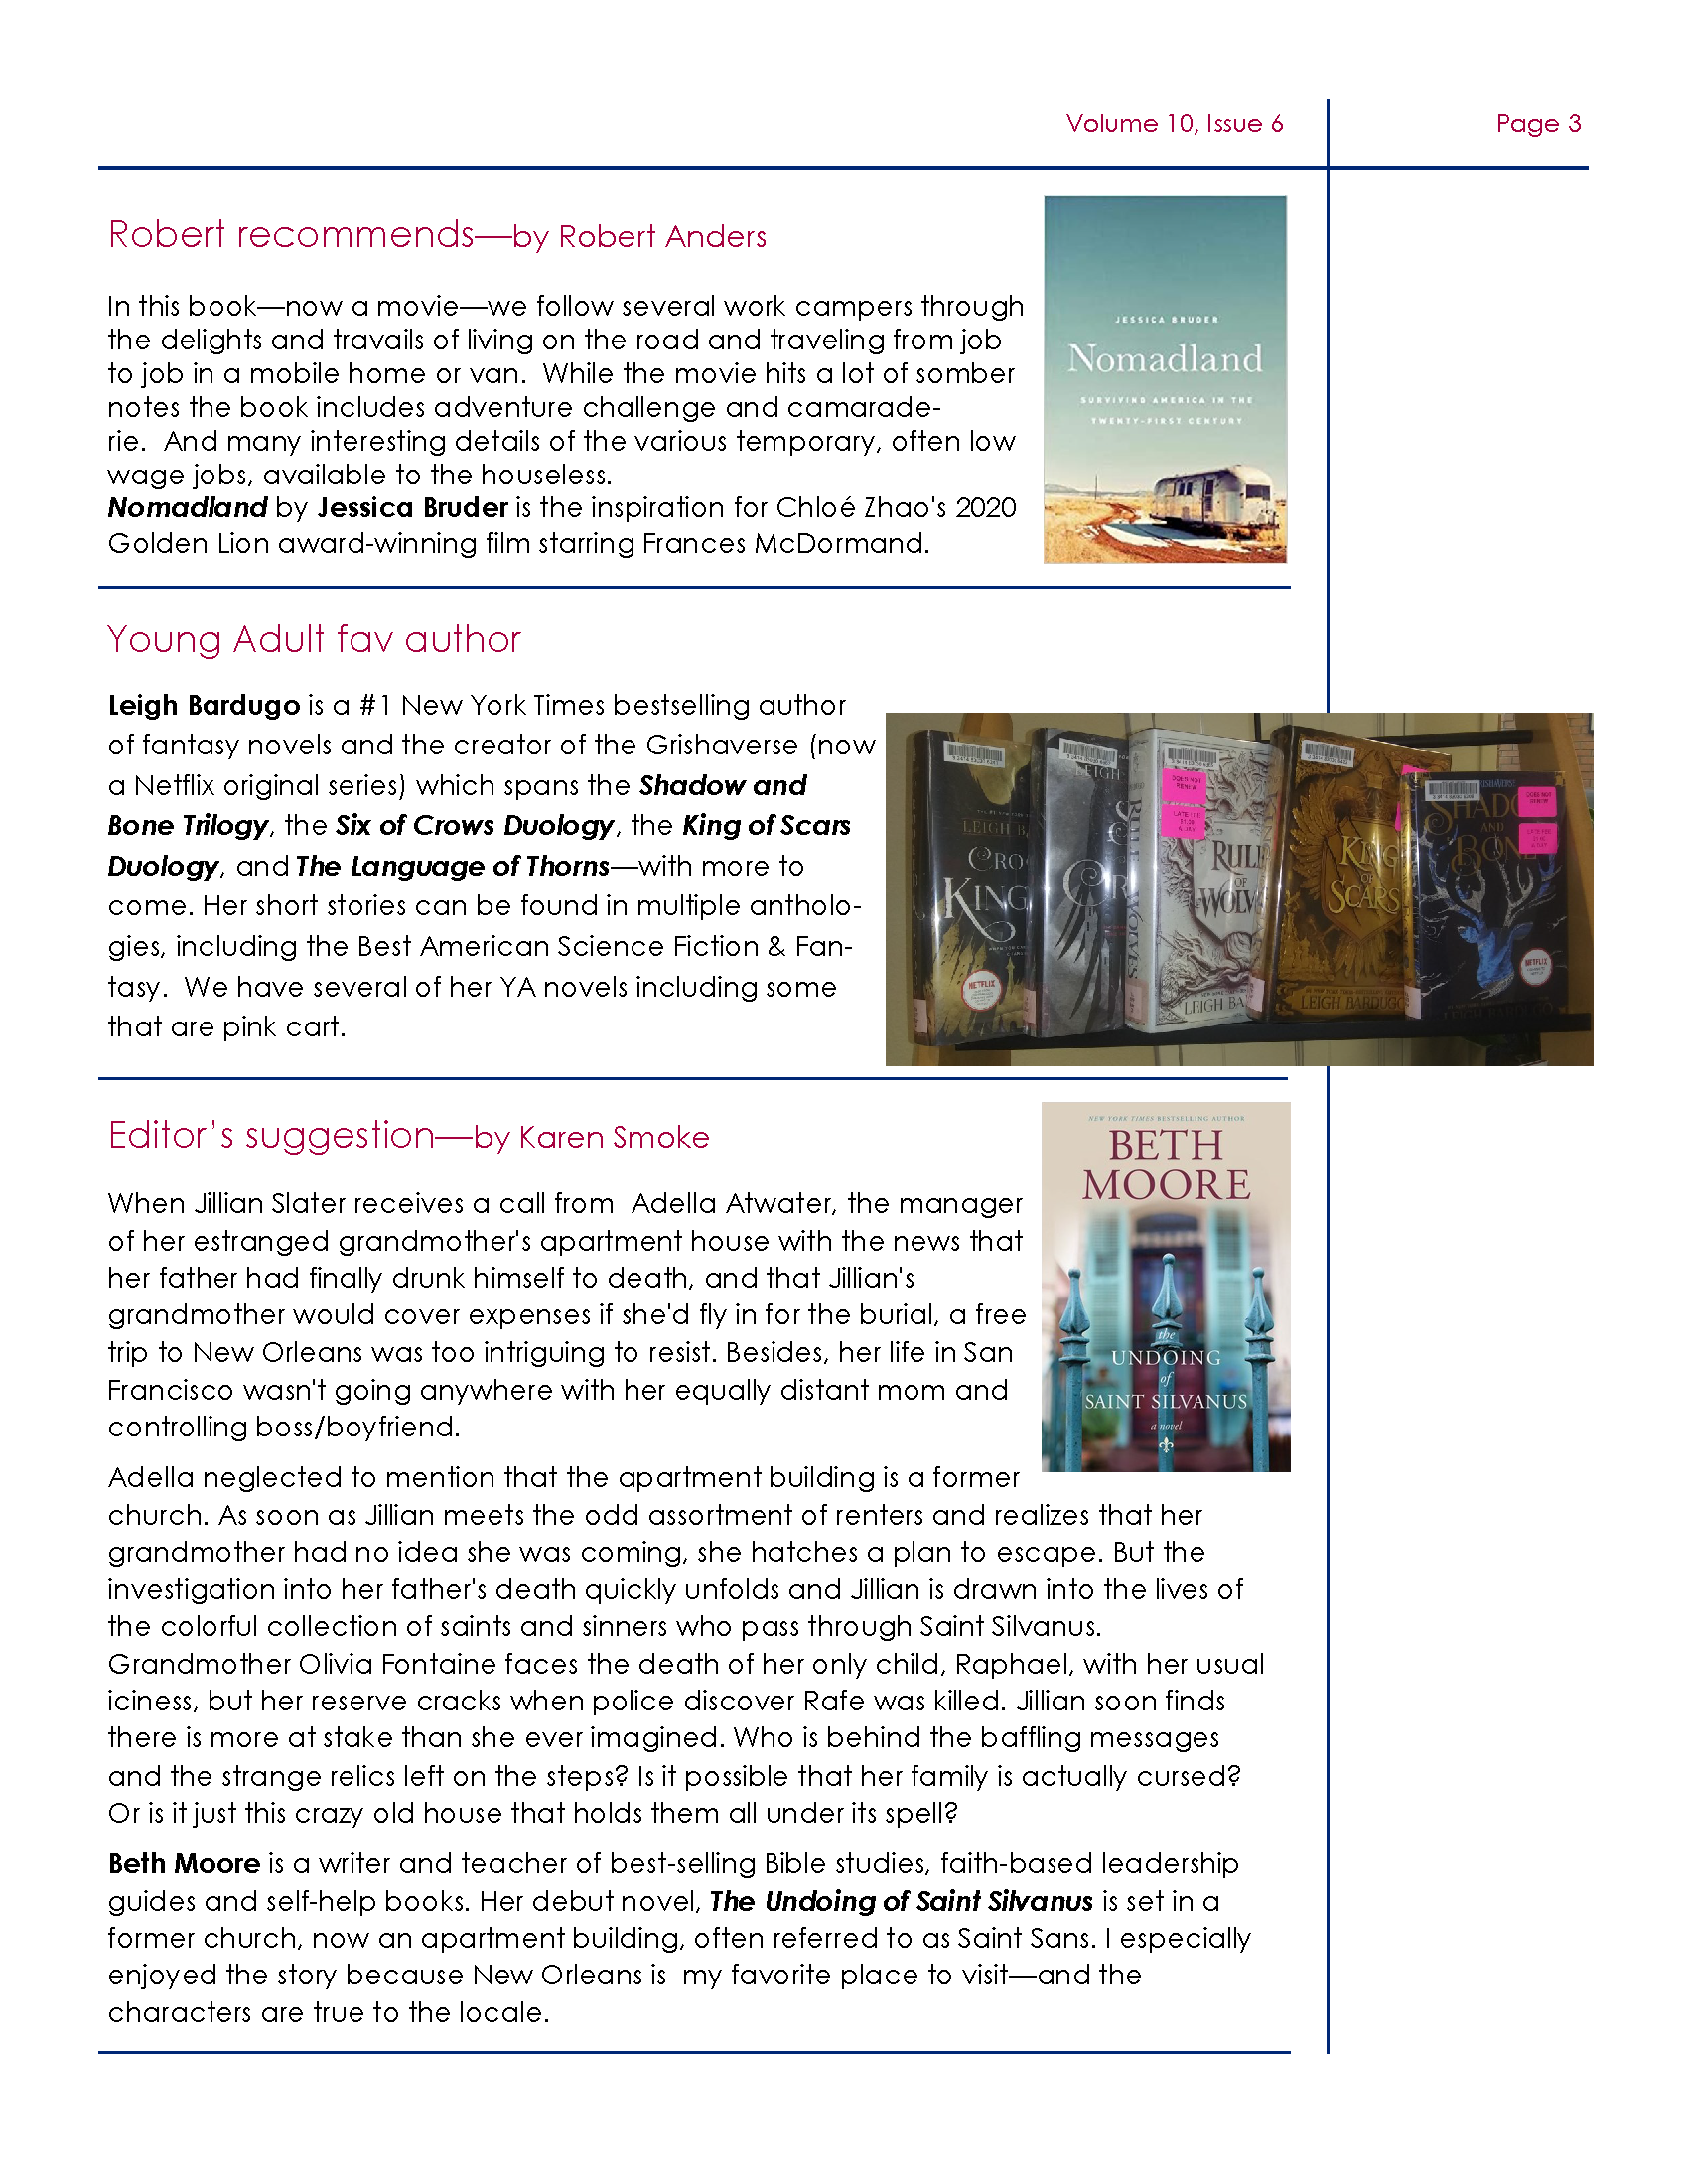 Page 3 of Newsletter